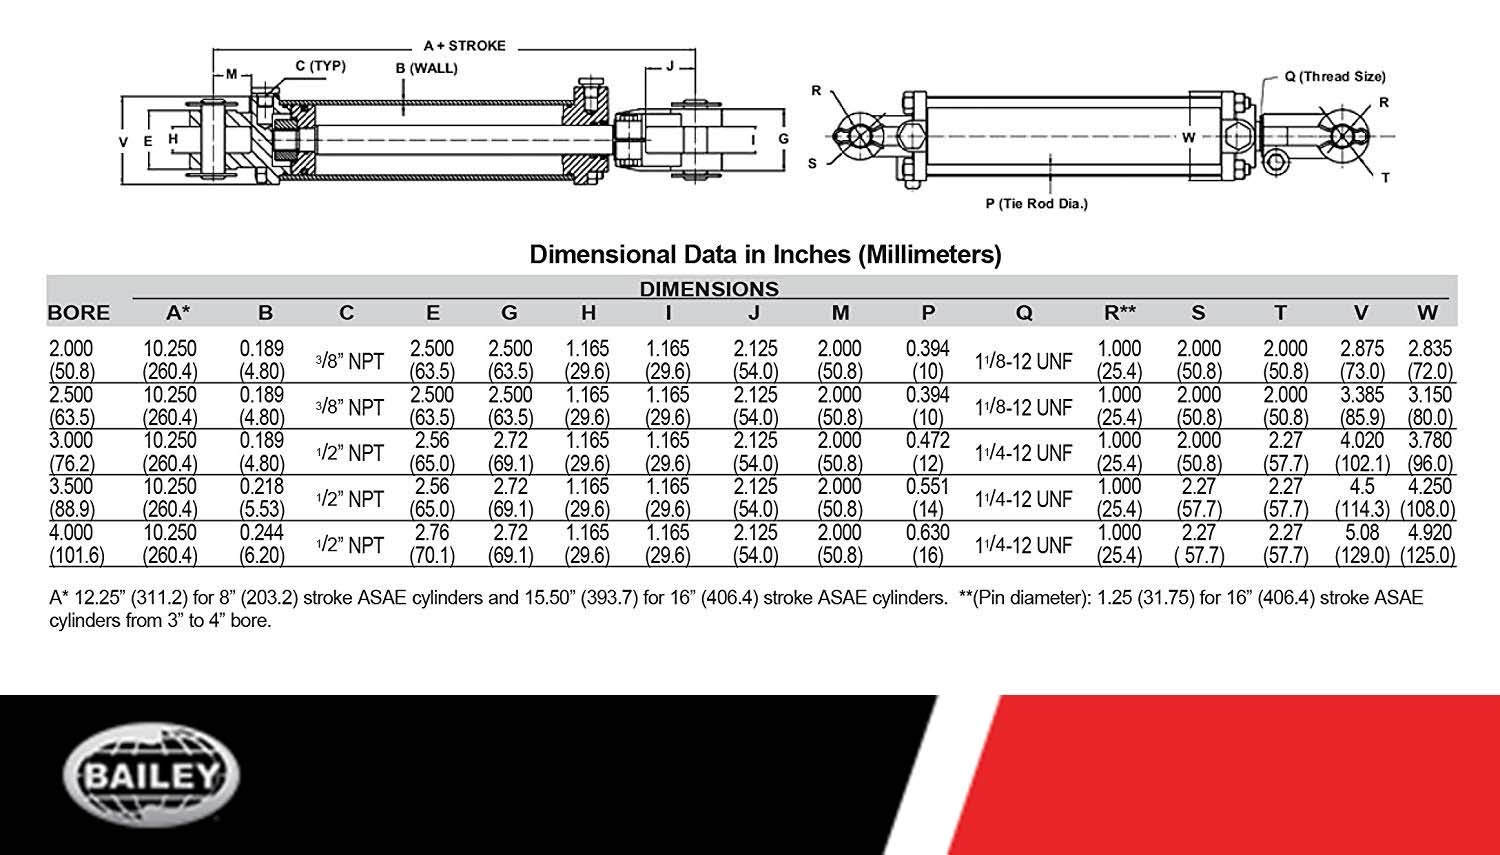 1.125 Rod Dia #3//8 NPT Port Retracted 34.25 and Extended Length 58.25 and 1 Pin Dia Maxim TC 2500 PSI Tie-Rod Cylinder for Double Acting 2 Bore x 24 Stroke